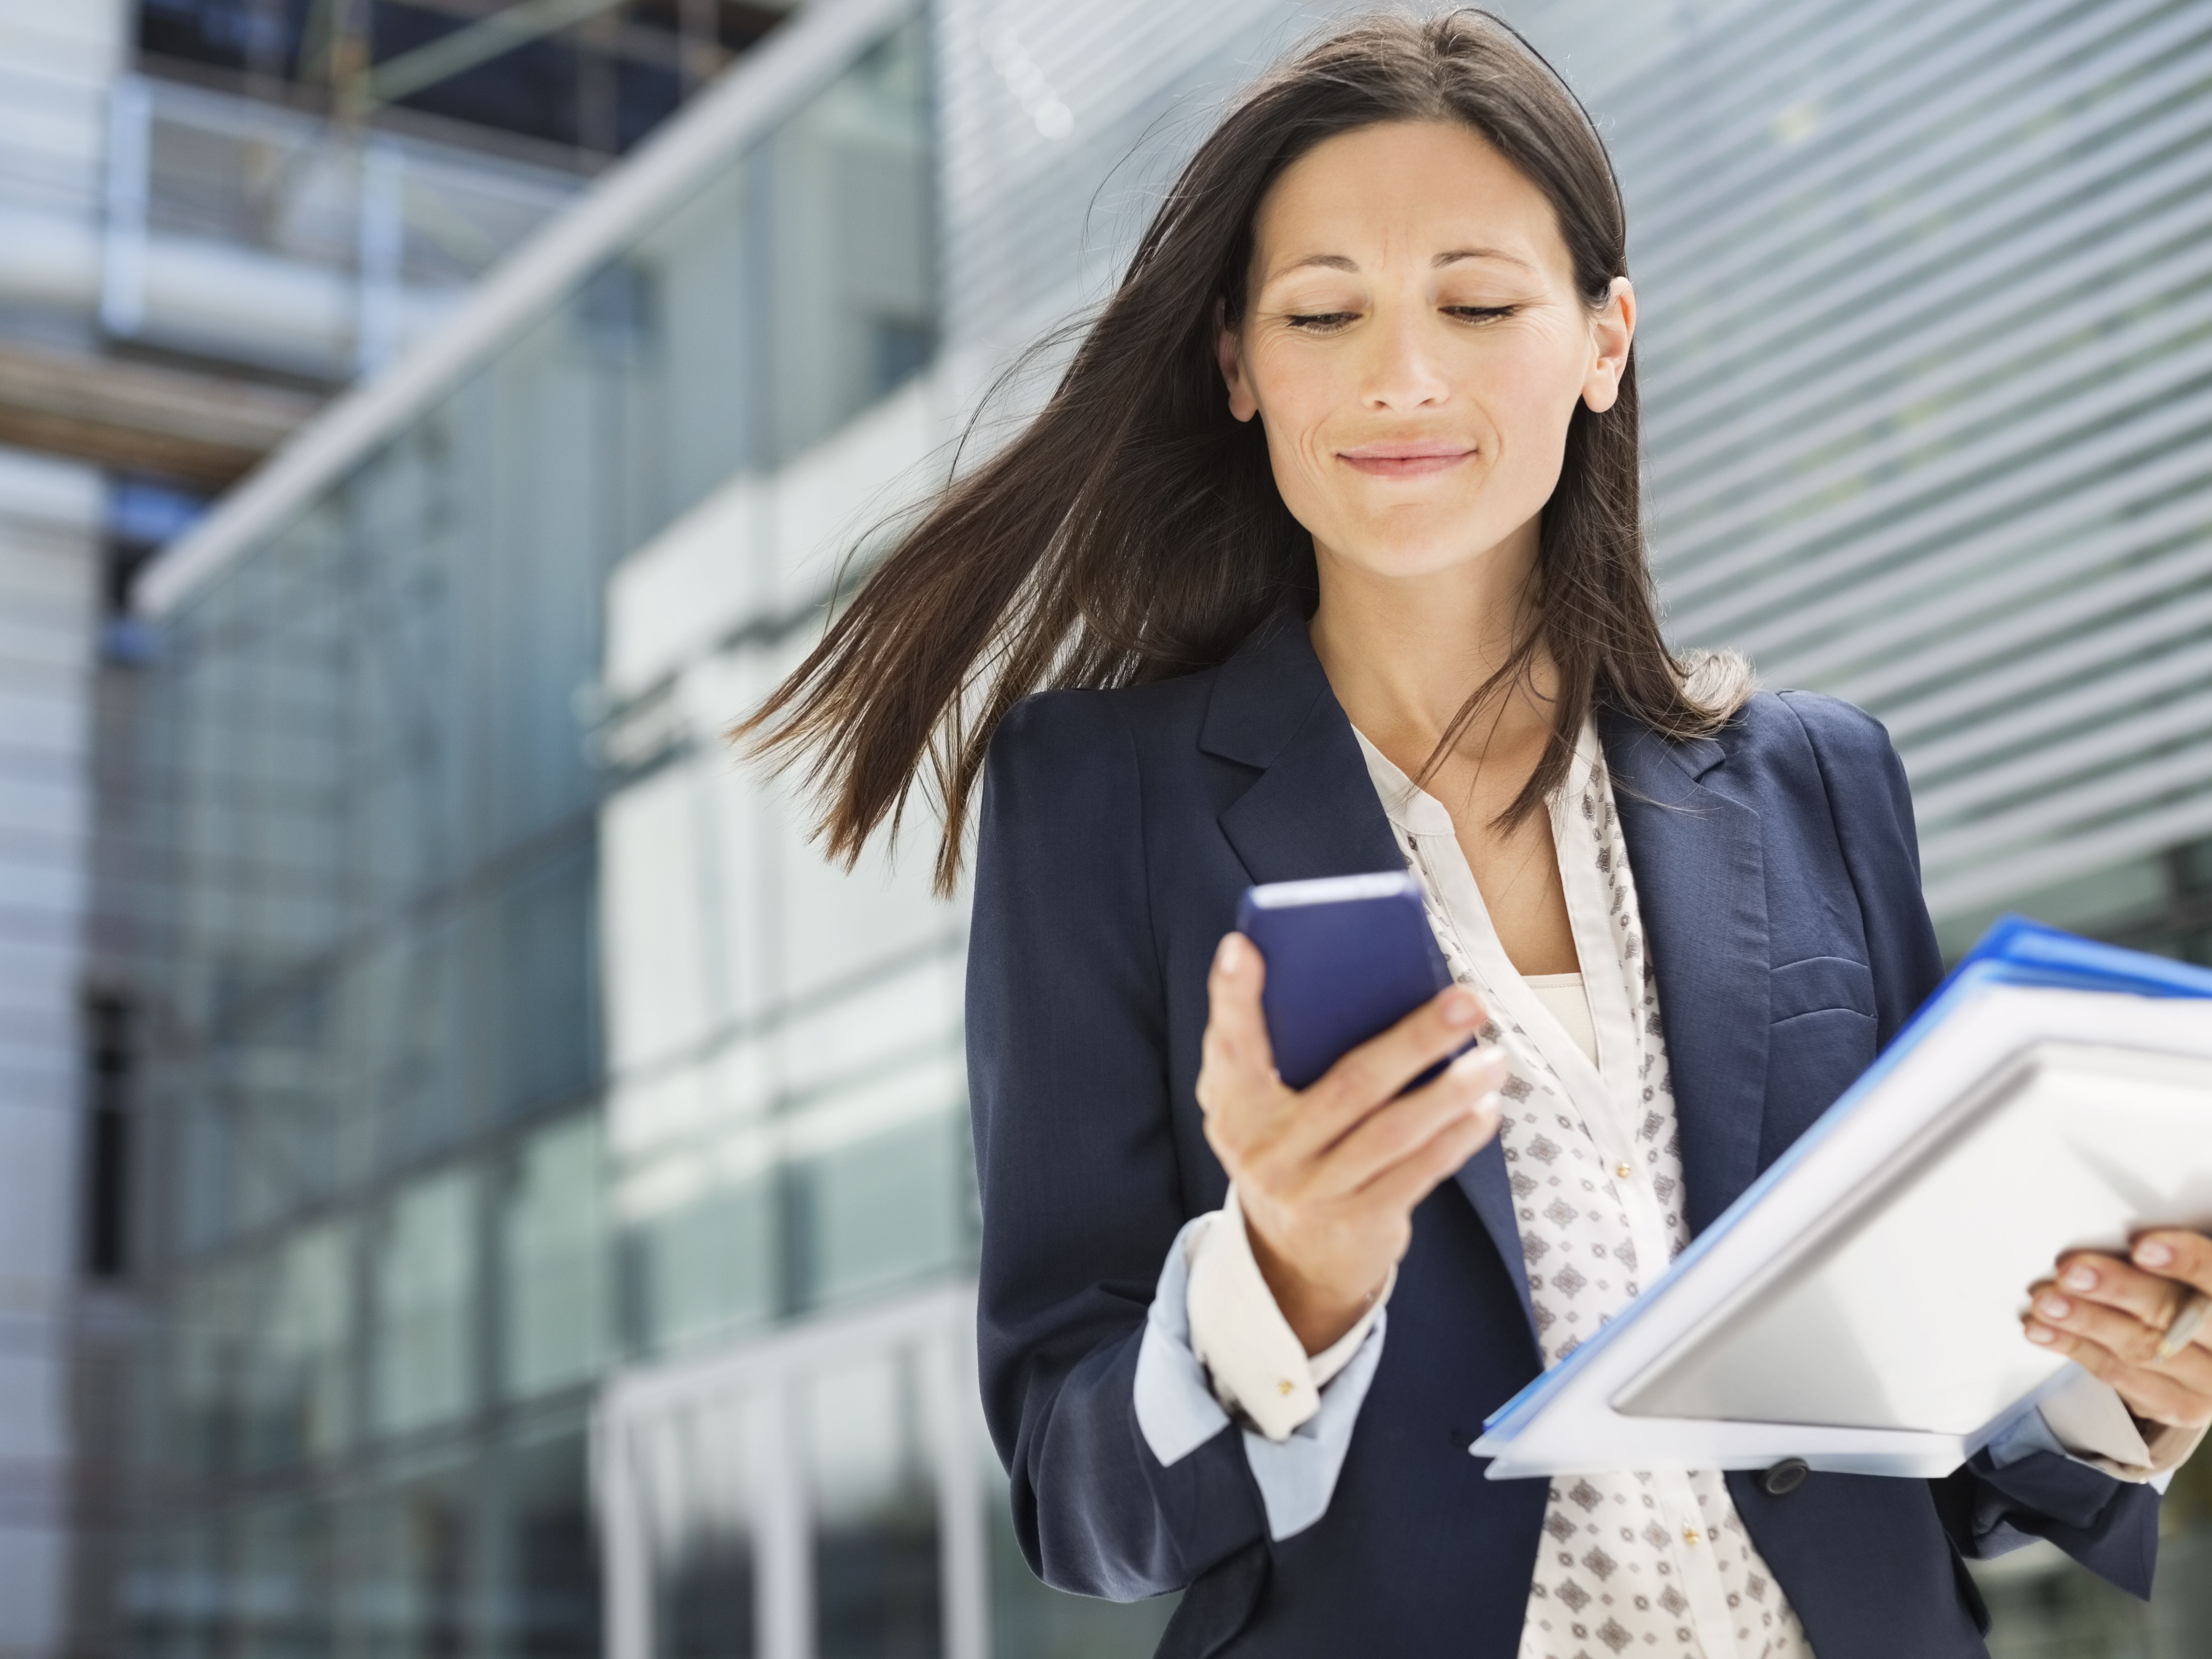 Cell Phones at Work - Etiquette Tips